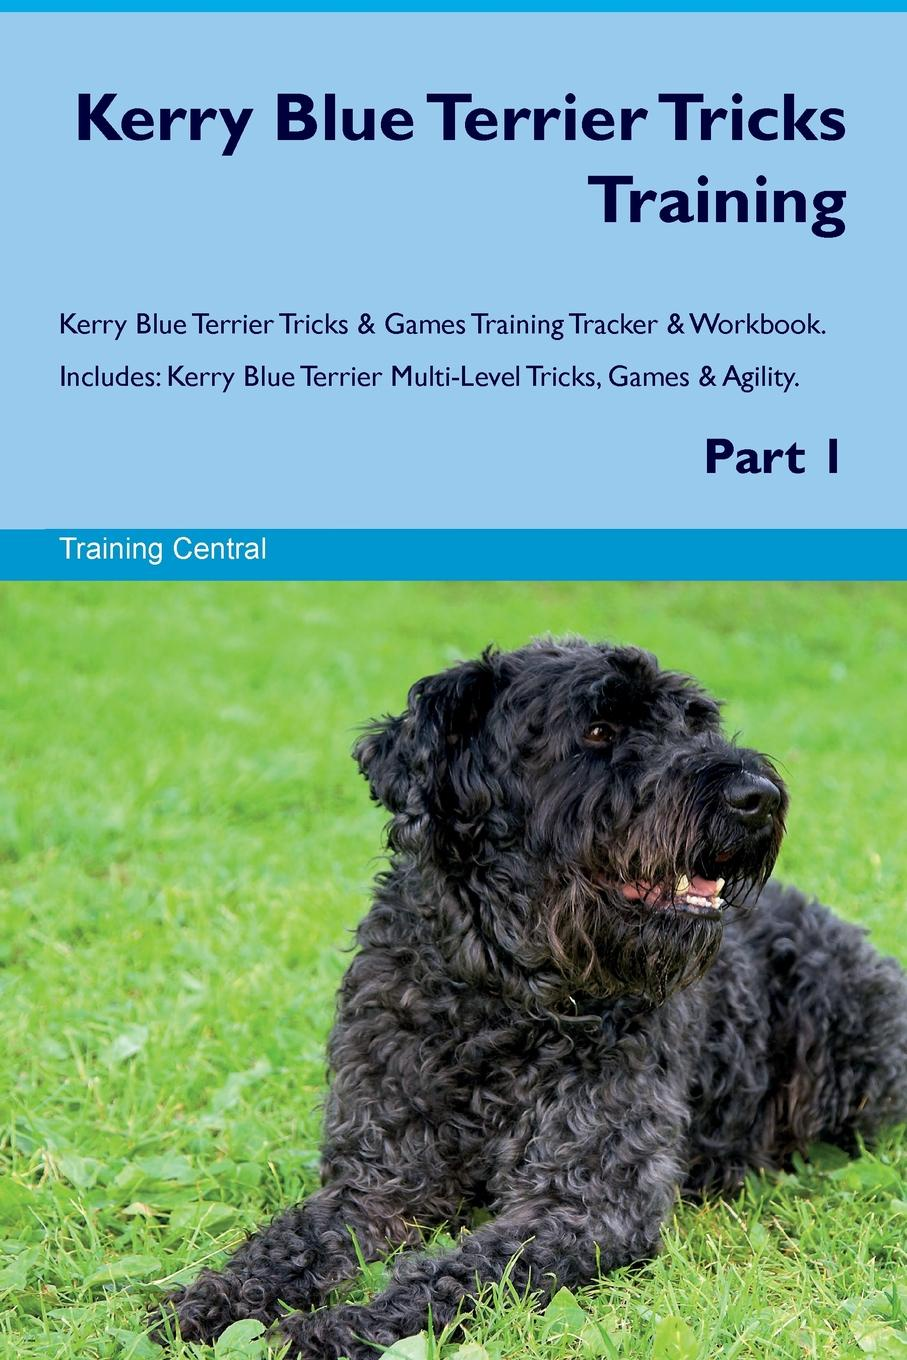 Training Central Kerry Blue Terrier Tricks & Games Tracker Workbook. Includes. Multi-Level Tricks, Agility. Part 1